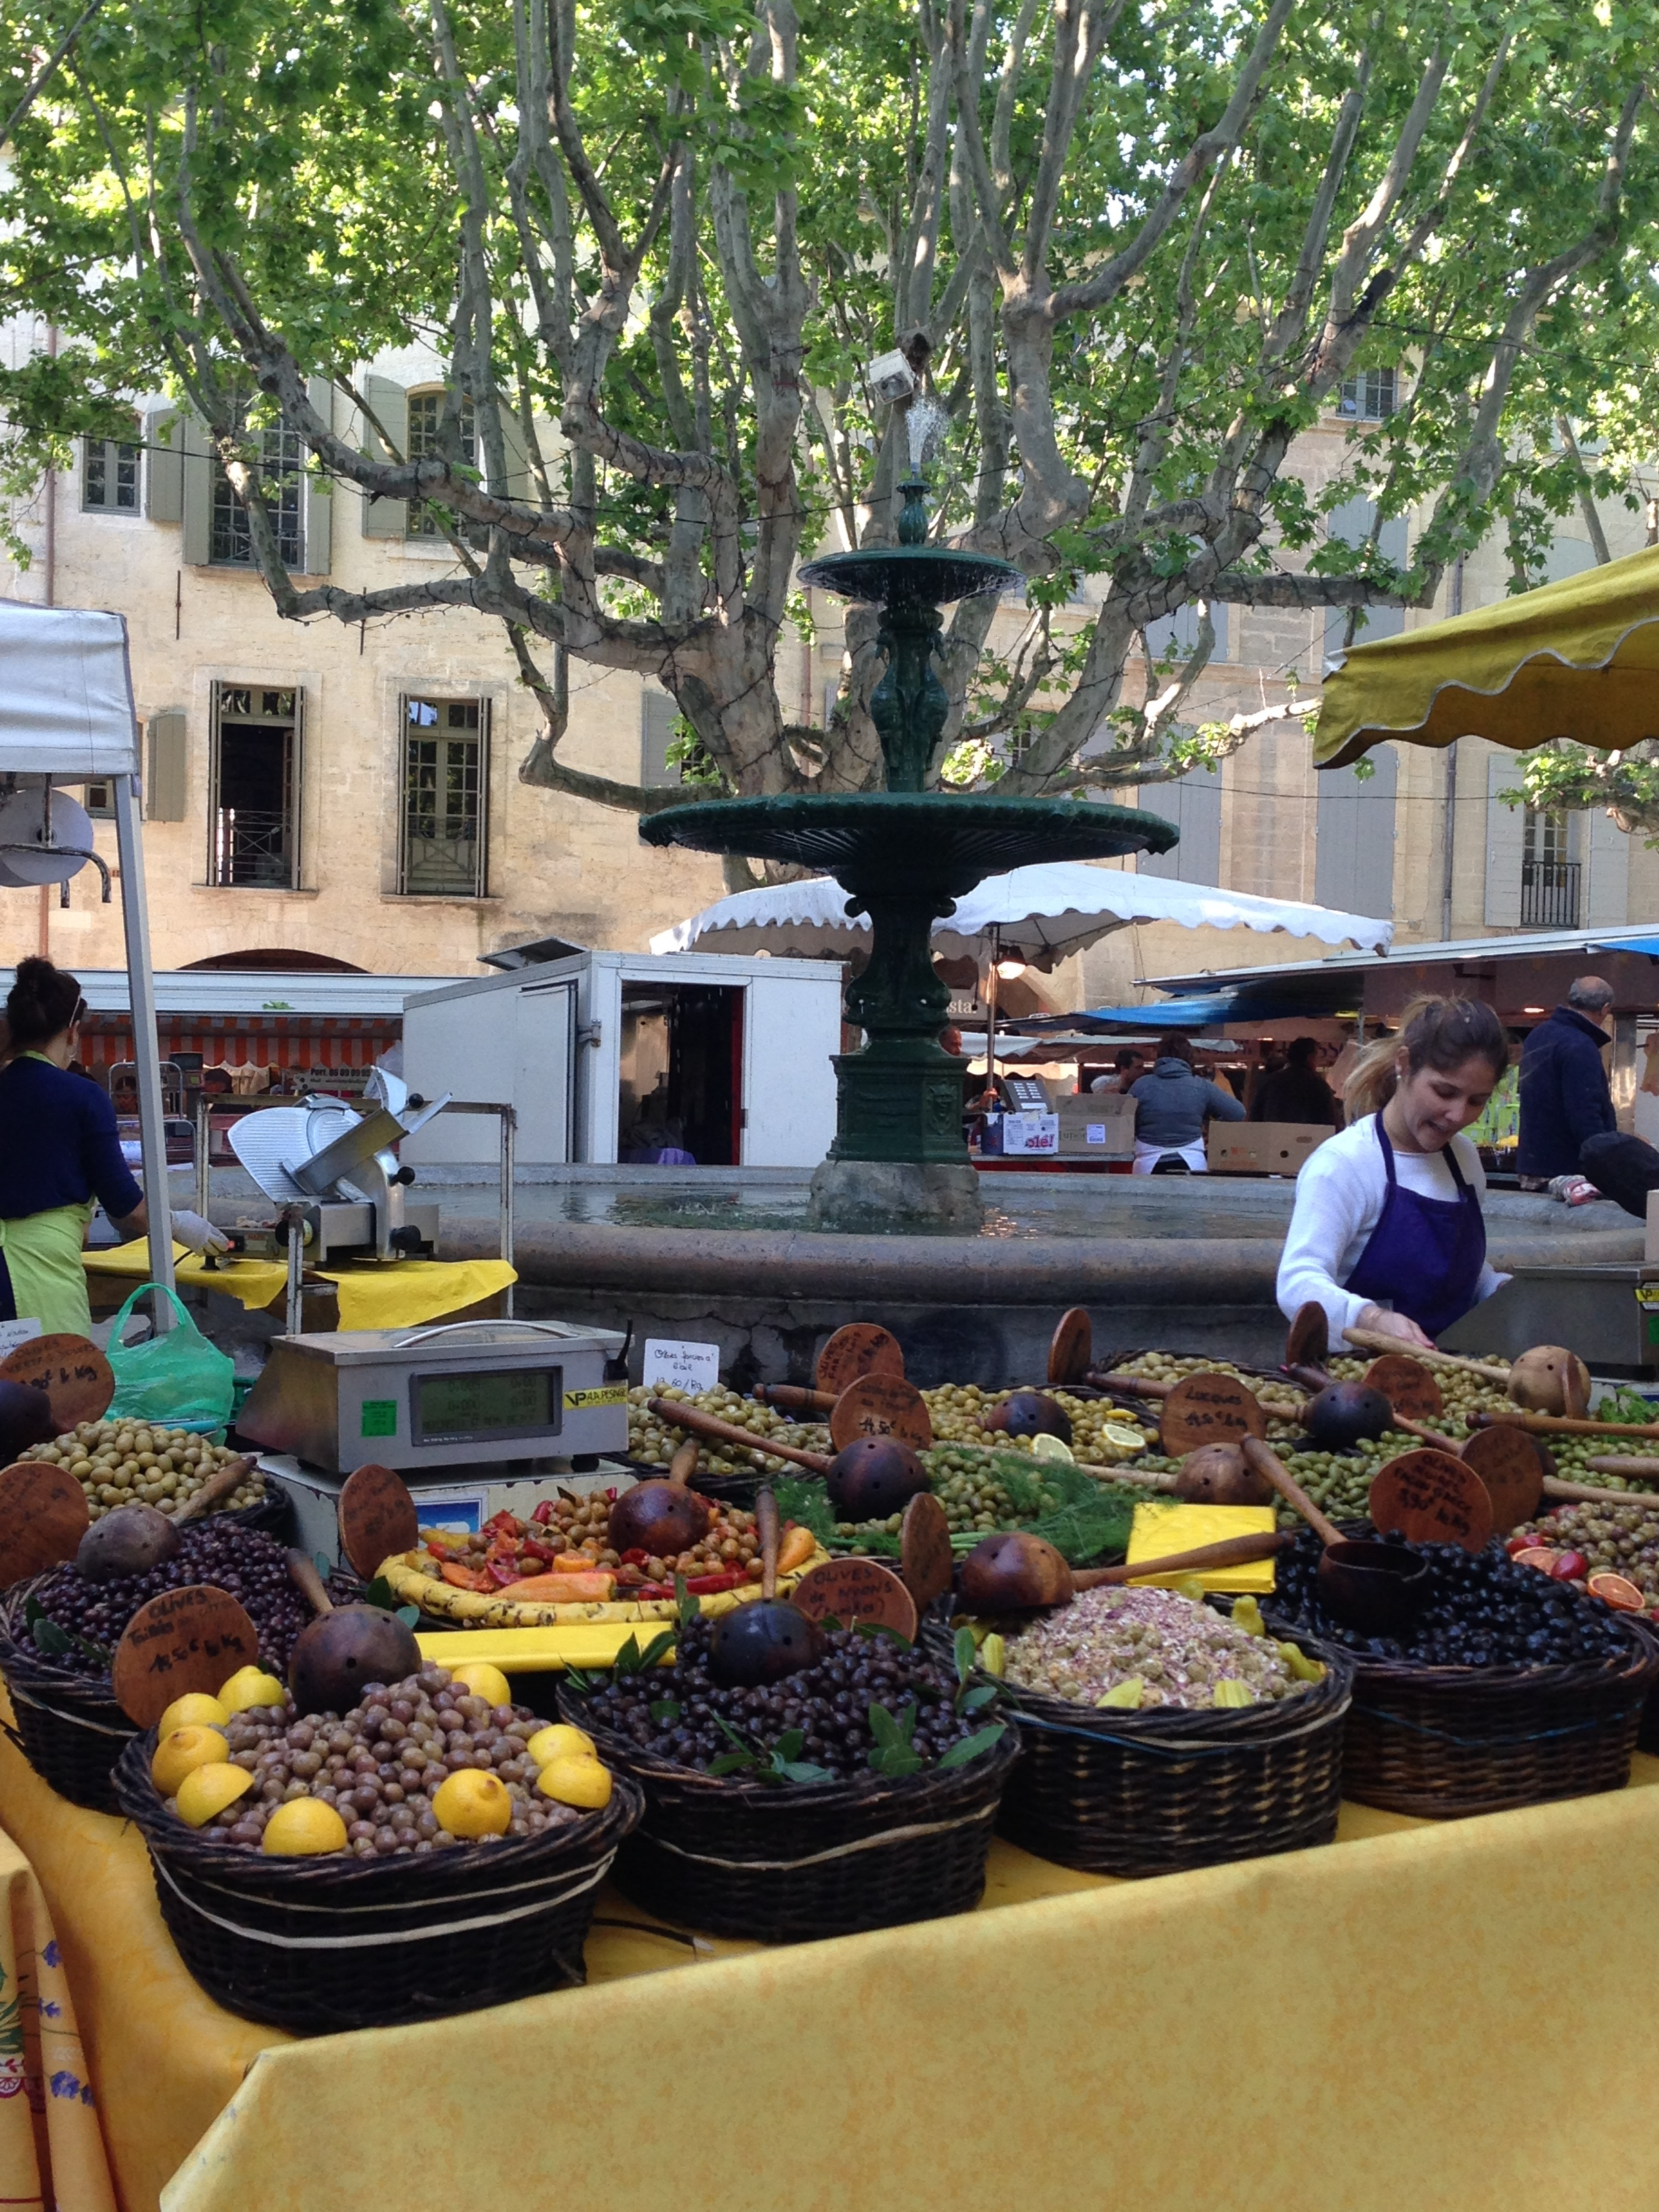 The charming market in Uzes, France, 2014